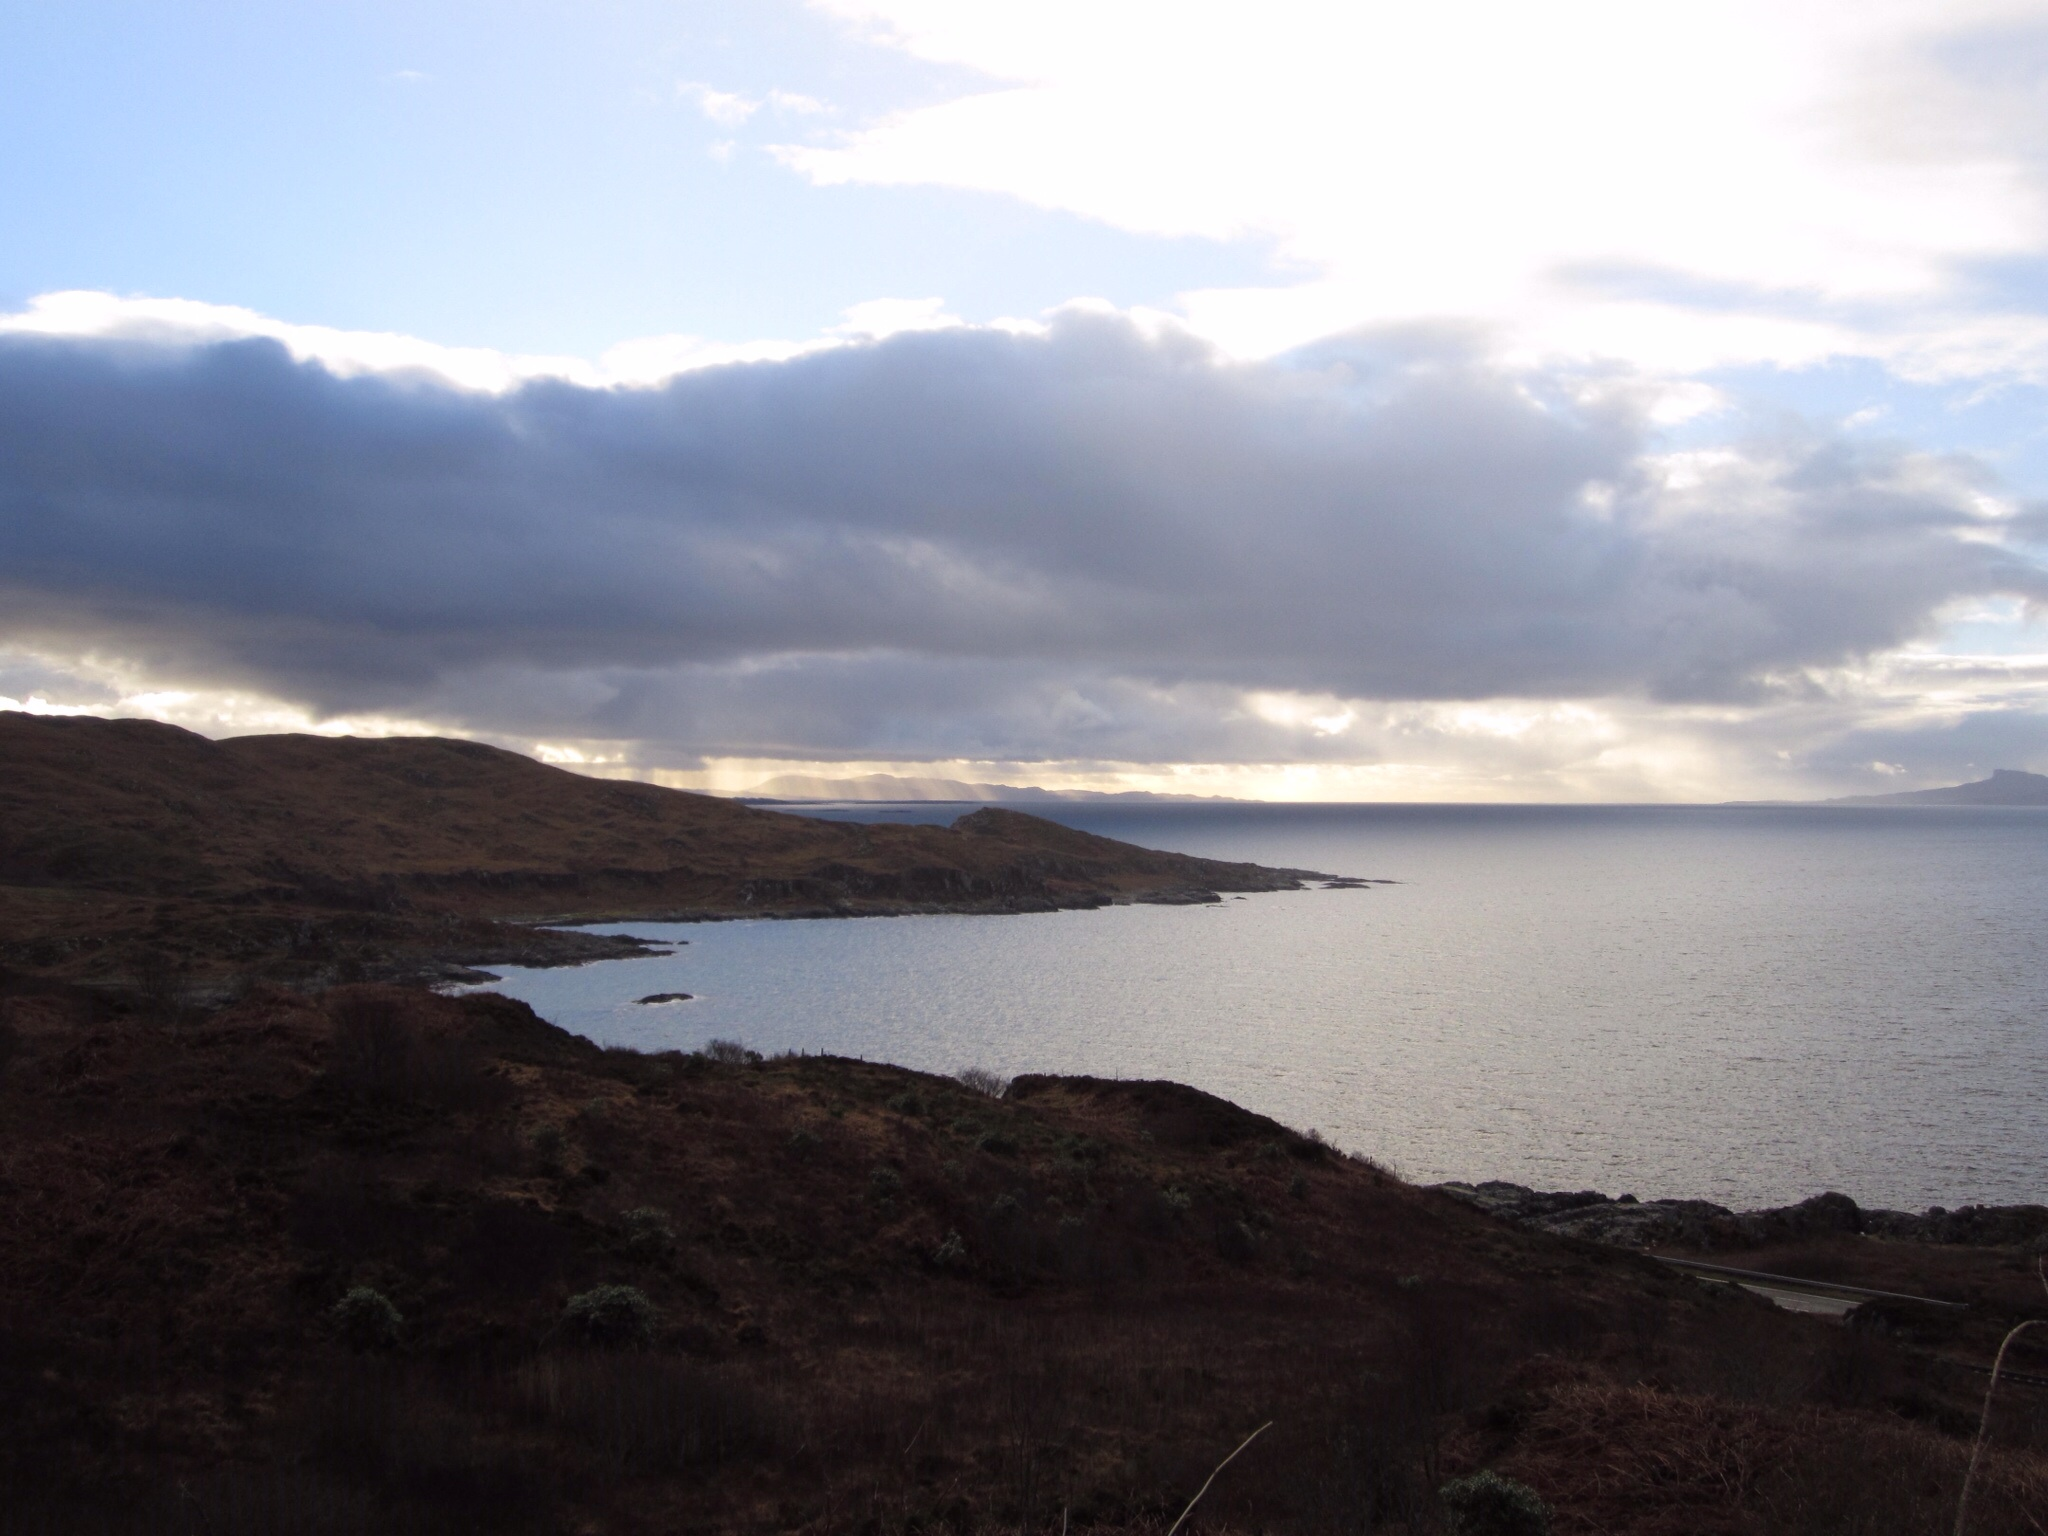 View from the road outside Ashdale Bed and Breakfast in Mallaig